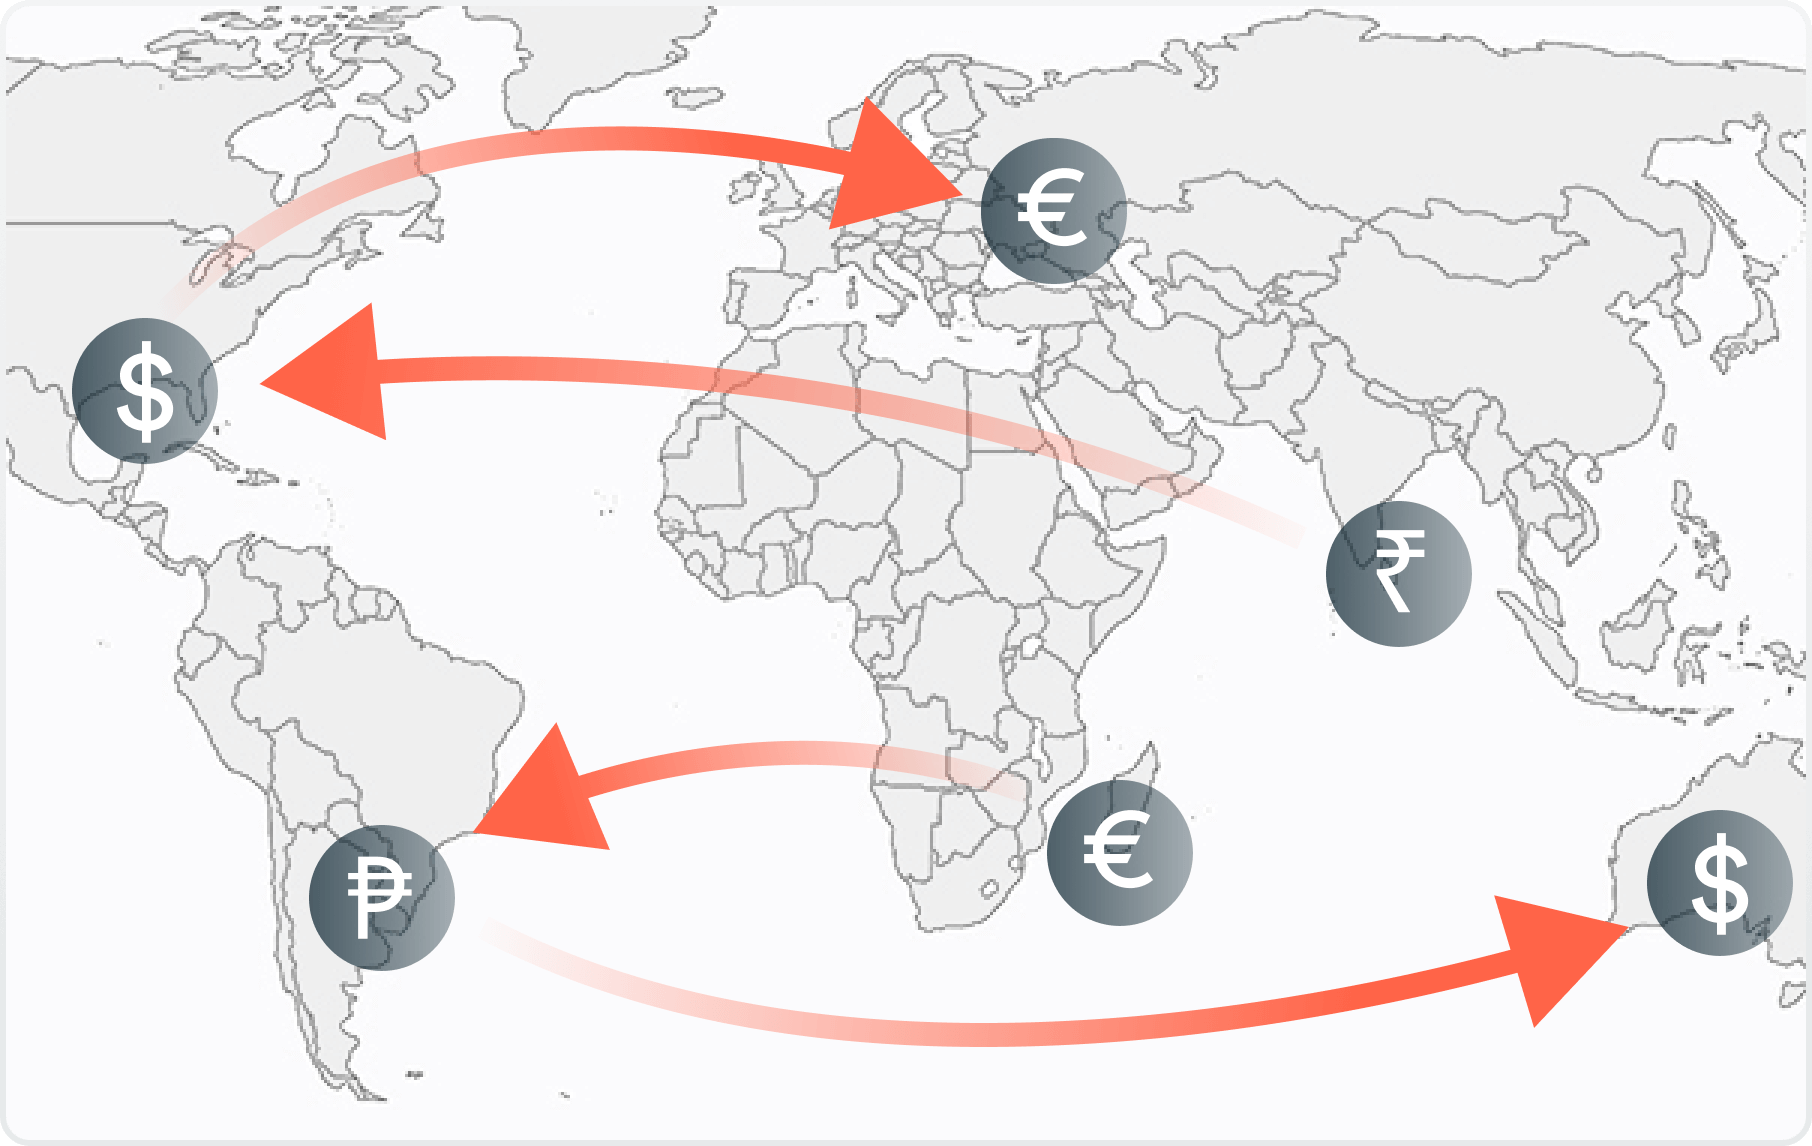 Graphic of a map visualizing international payments. Pay vendors world-wide.